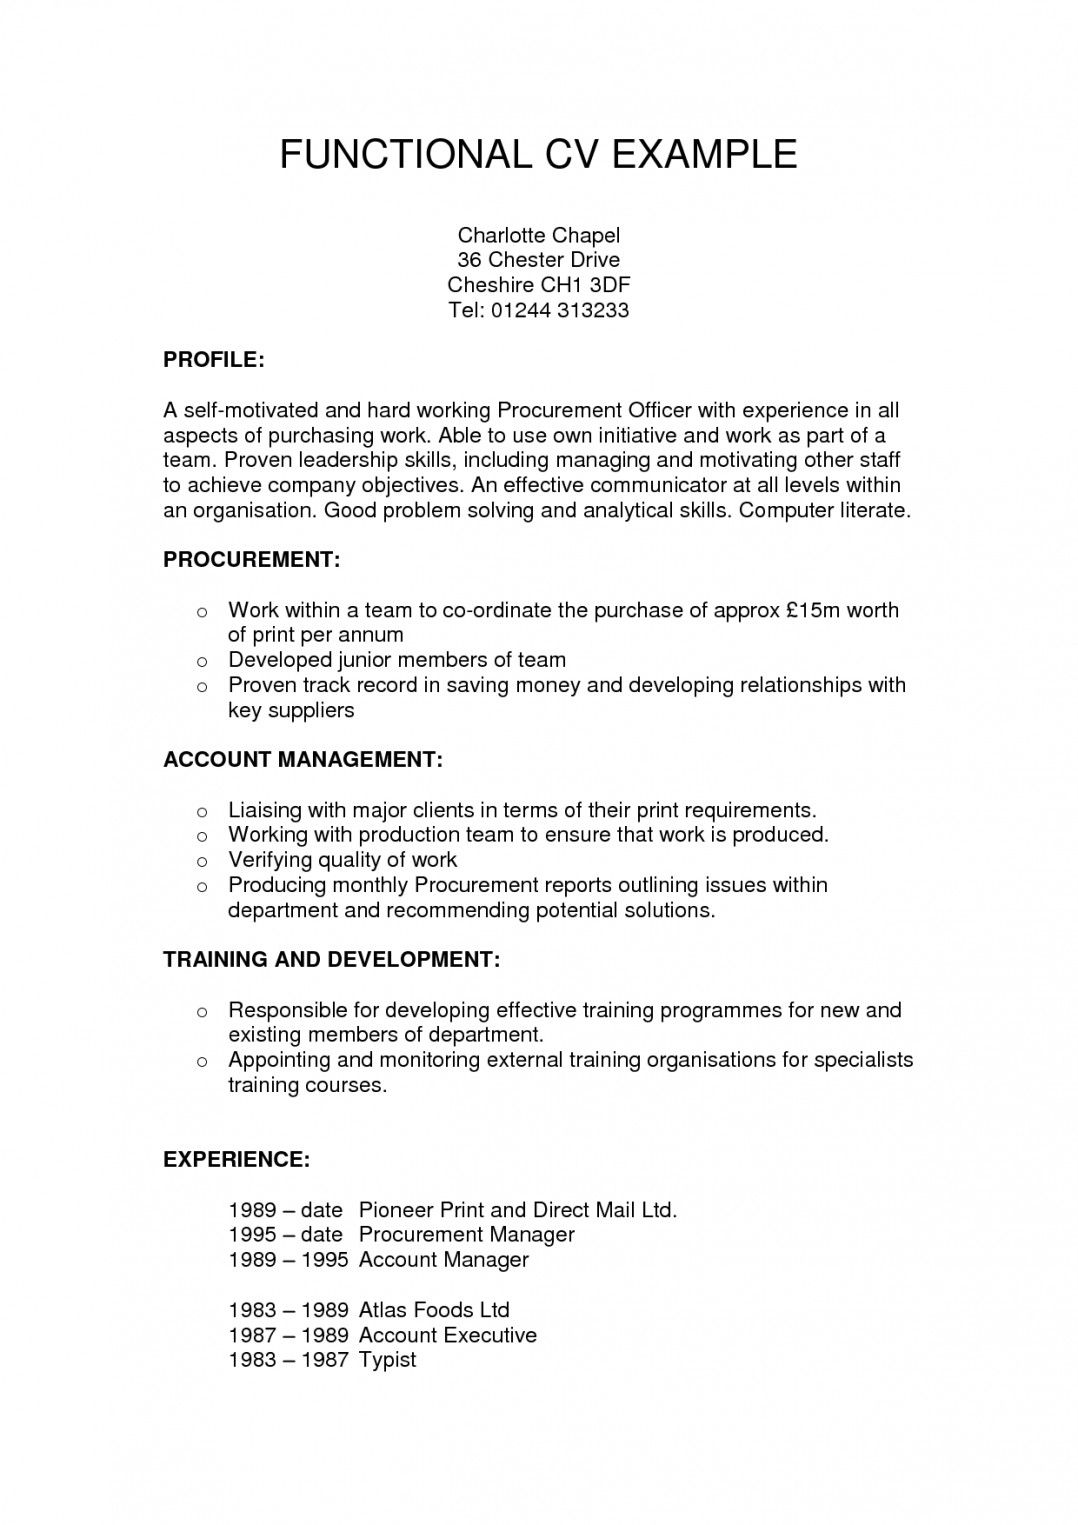 005 Incredible Functional Resume Template Free High Definition Full